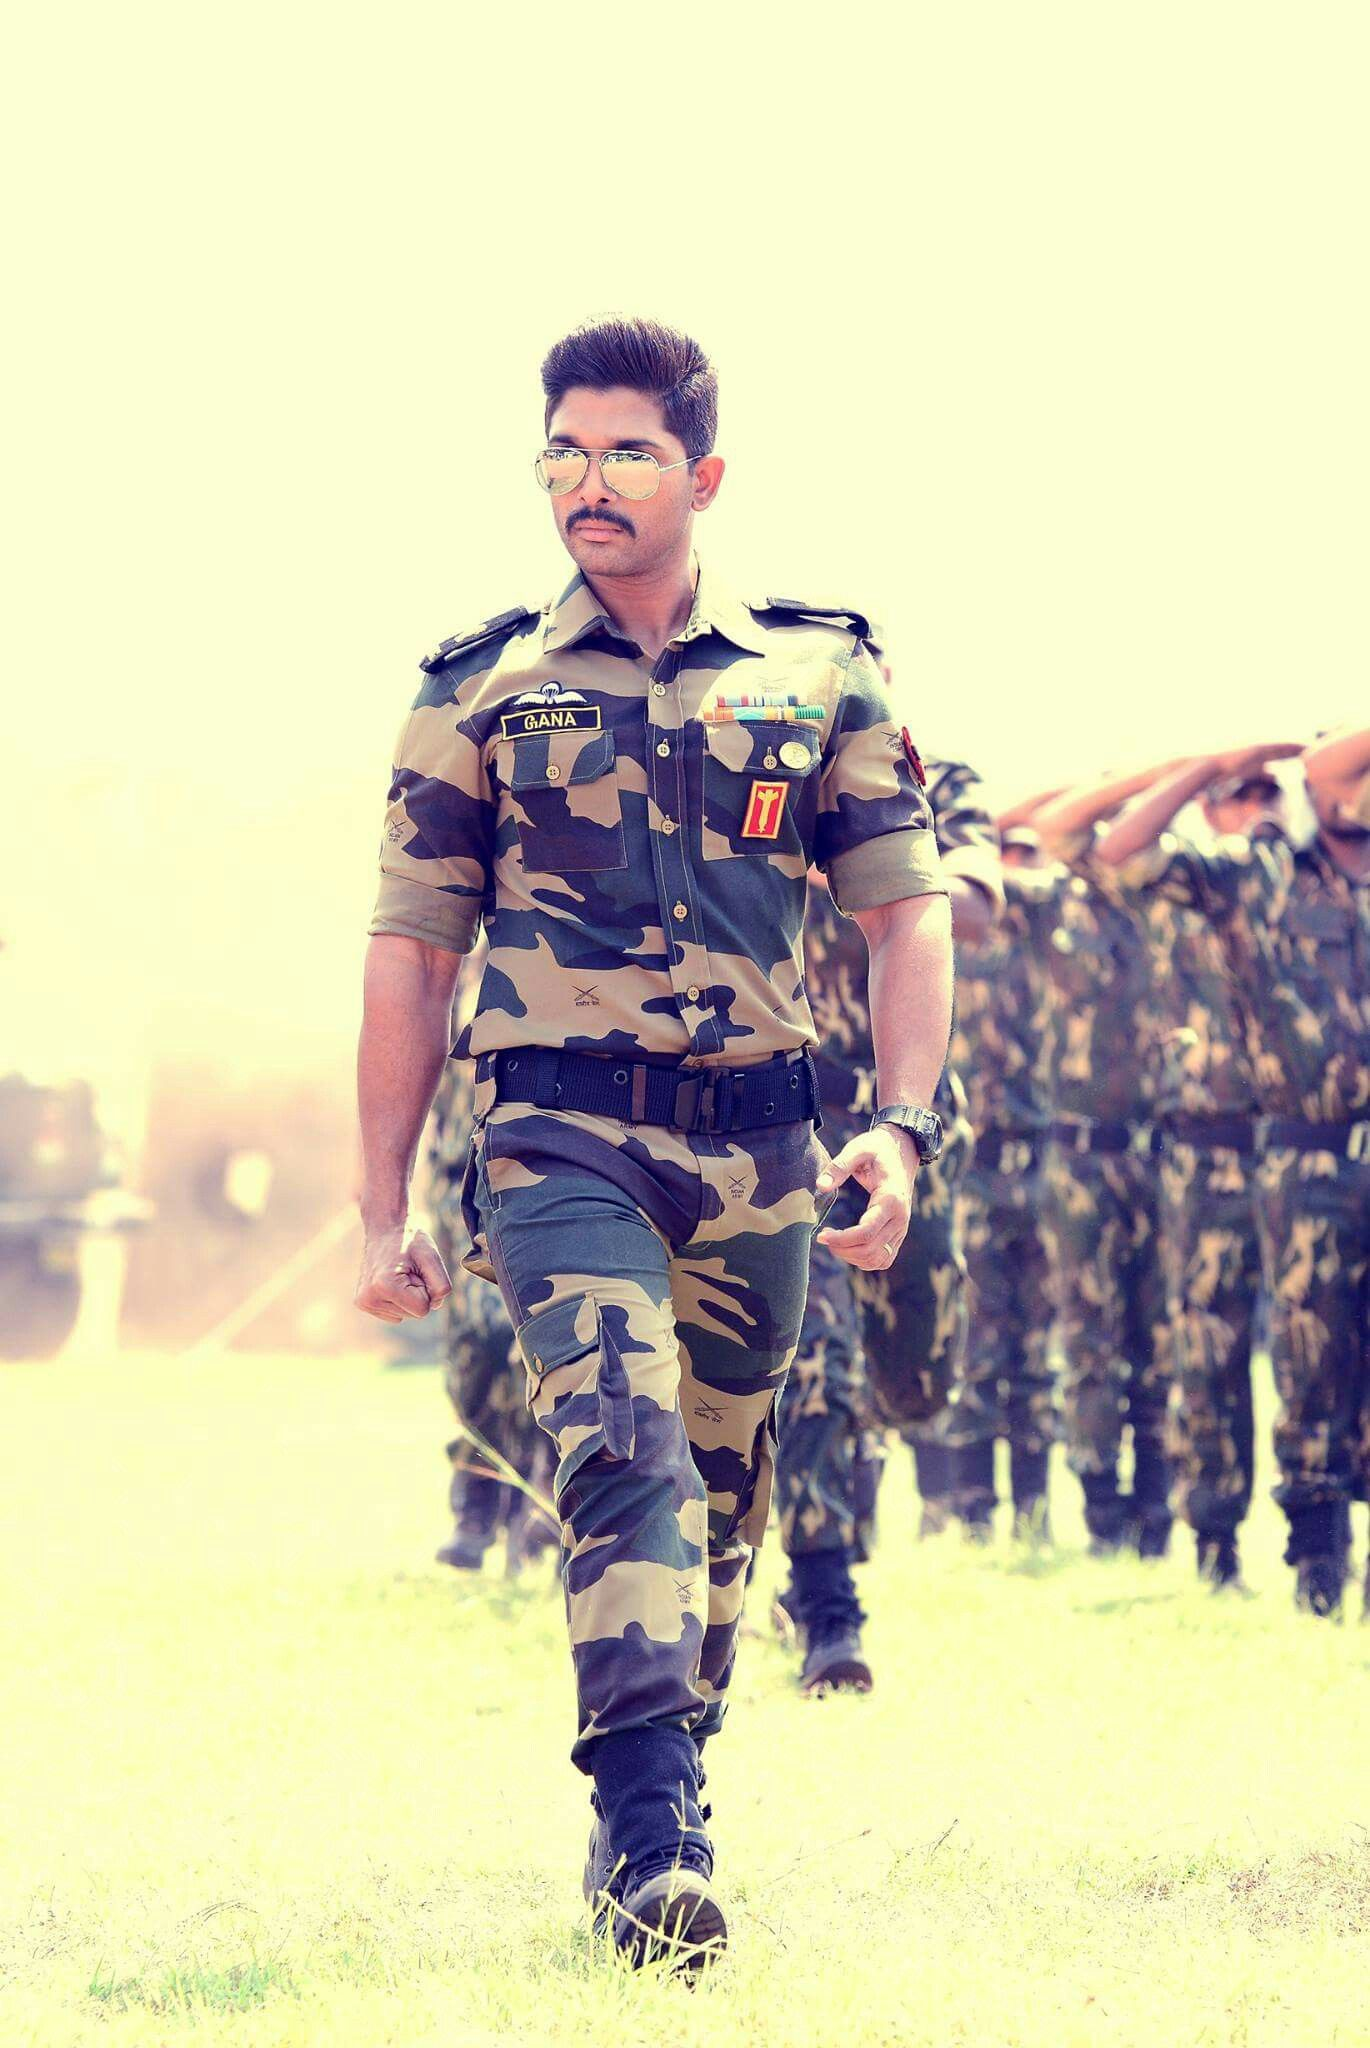 Stylish Army Man Indian Army Wallpapers Army Images Army Wallpaper